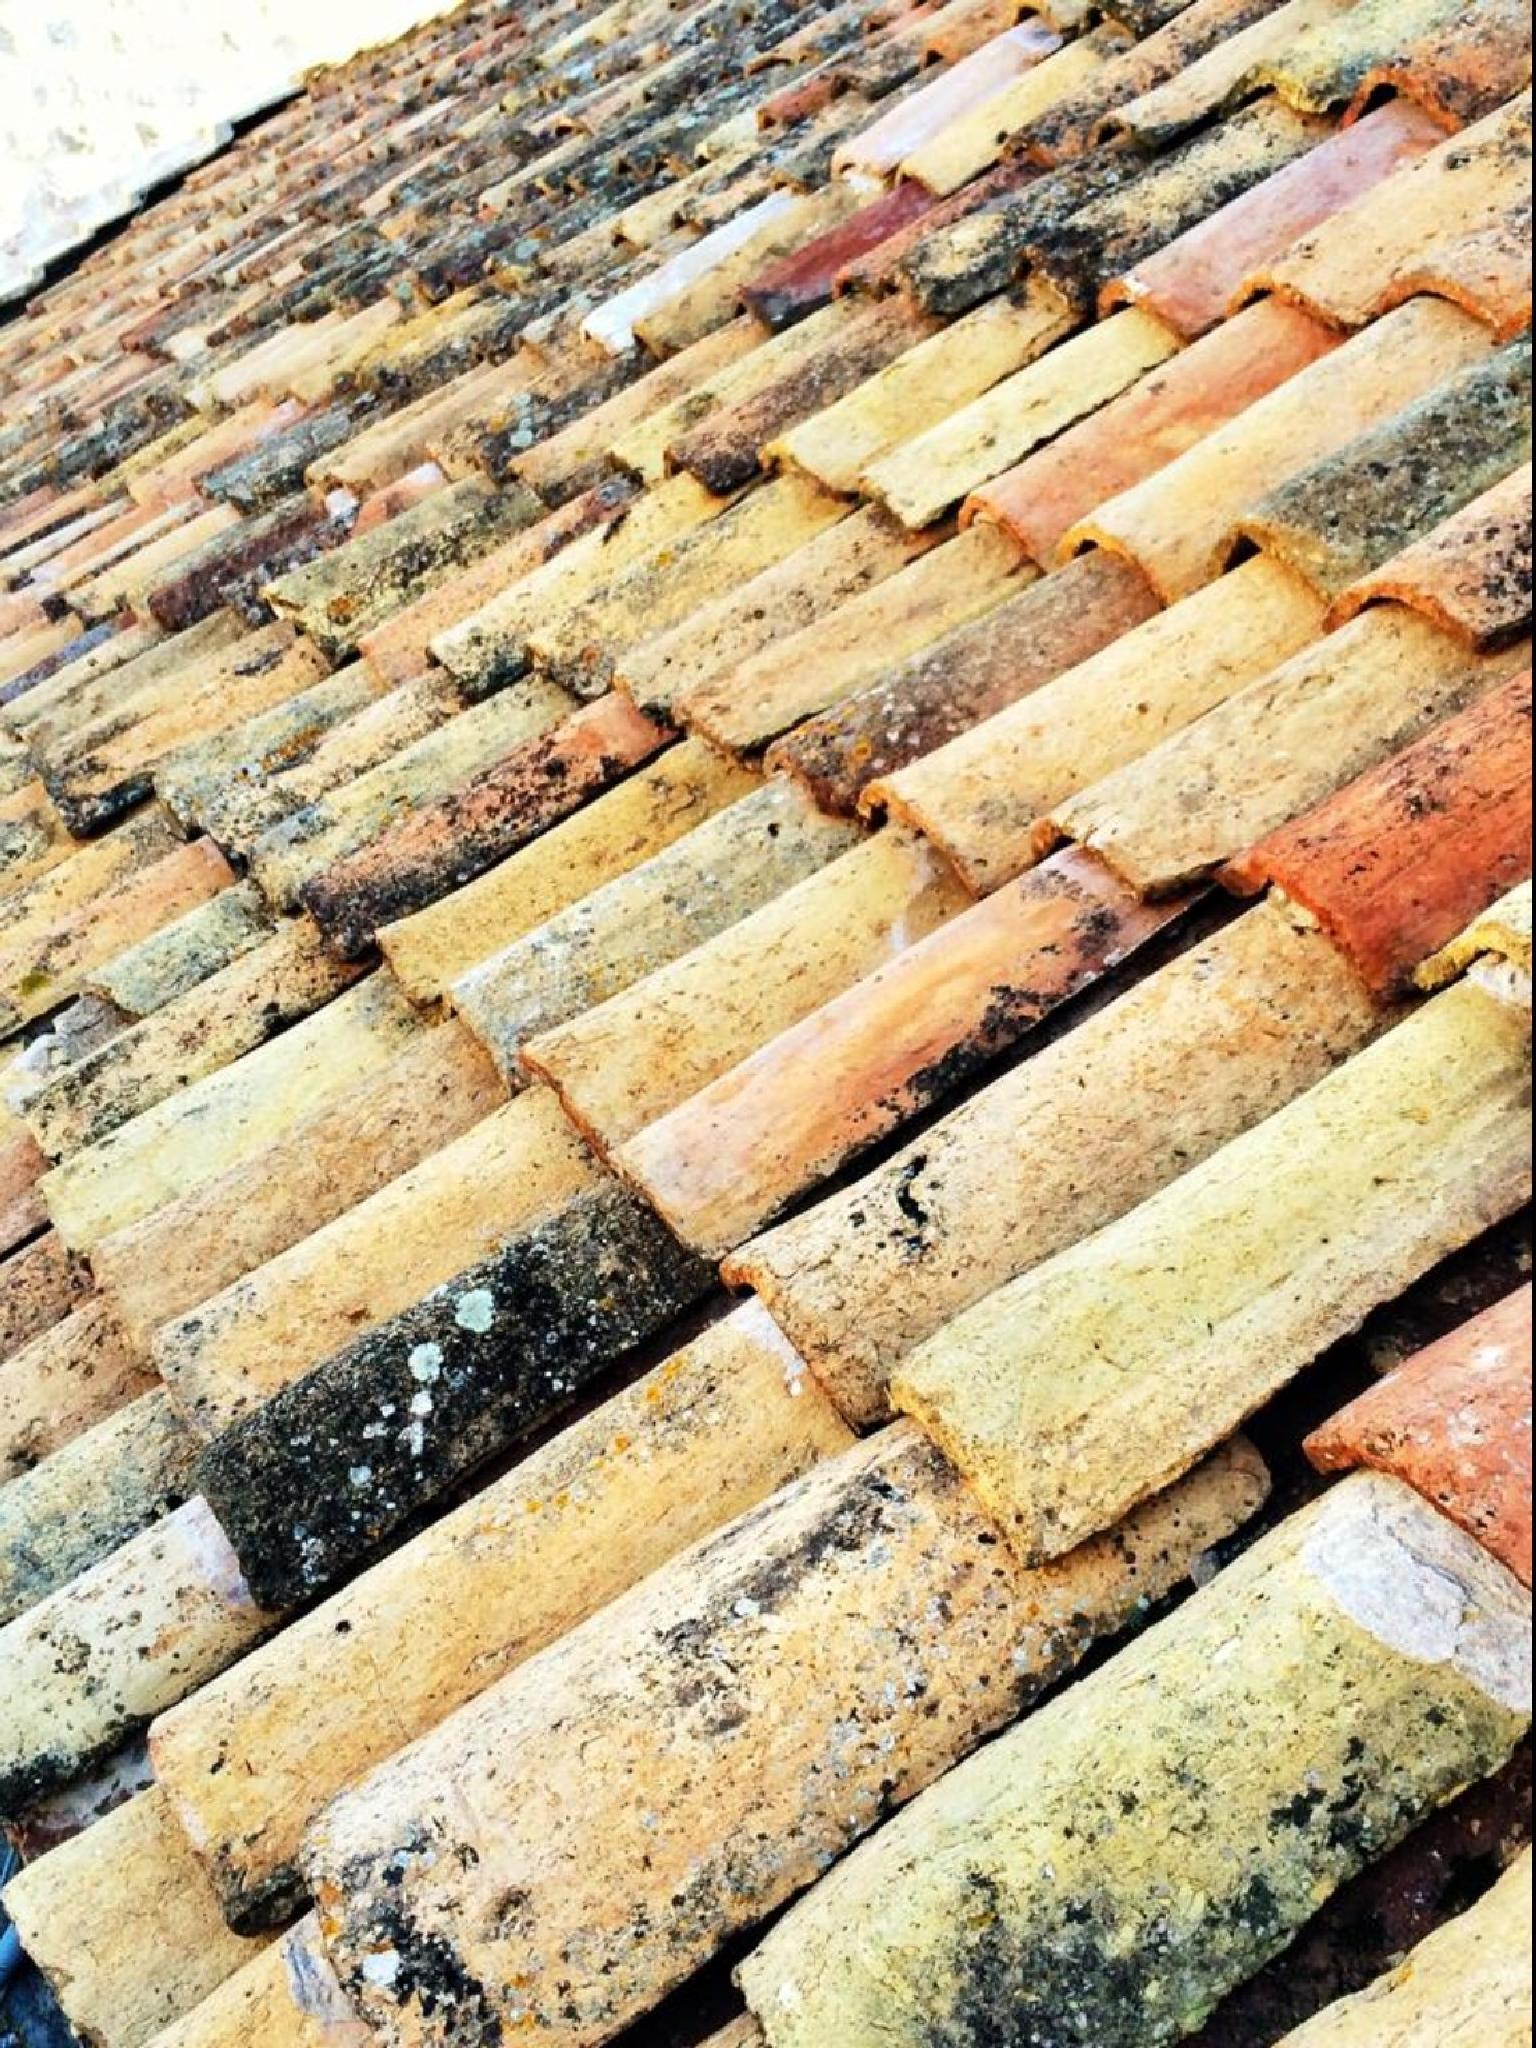 Roof tiles by Gayle